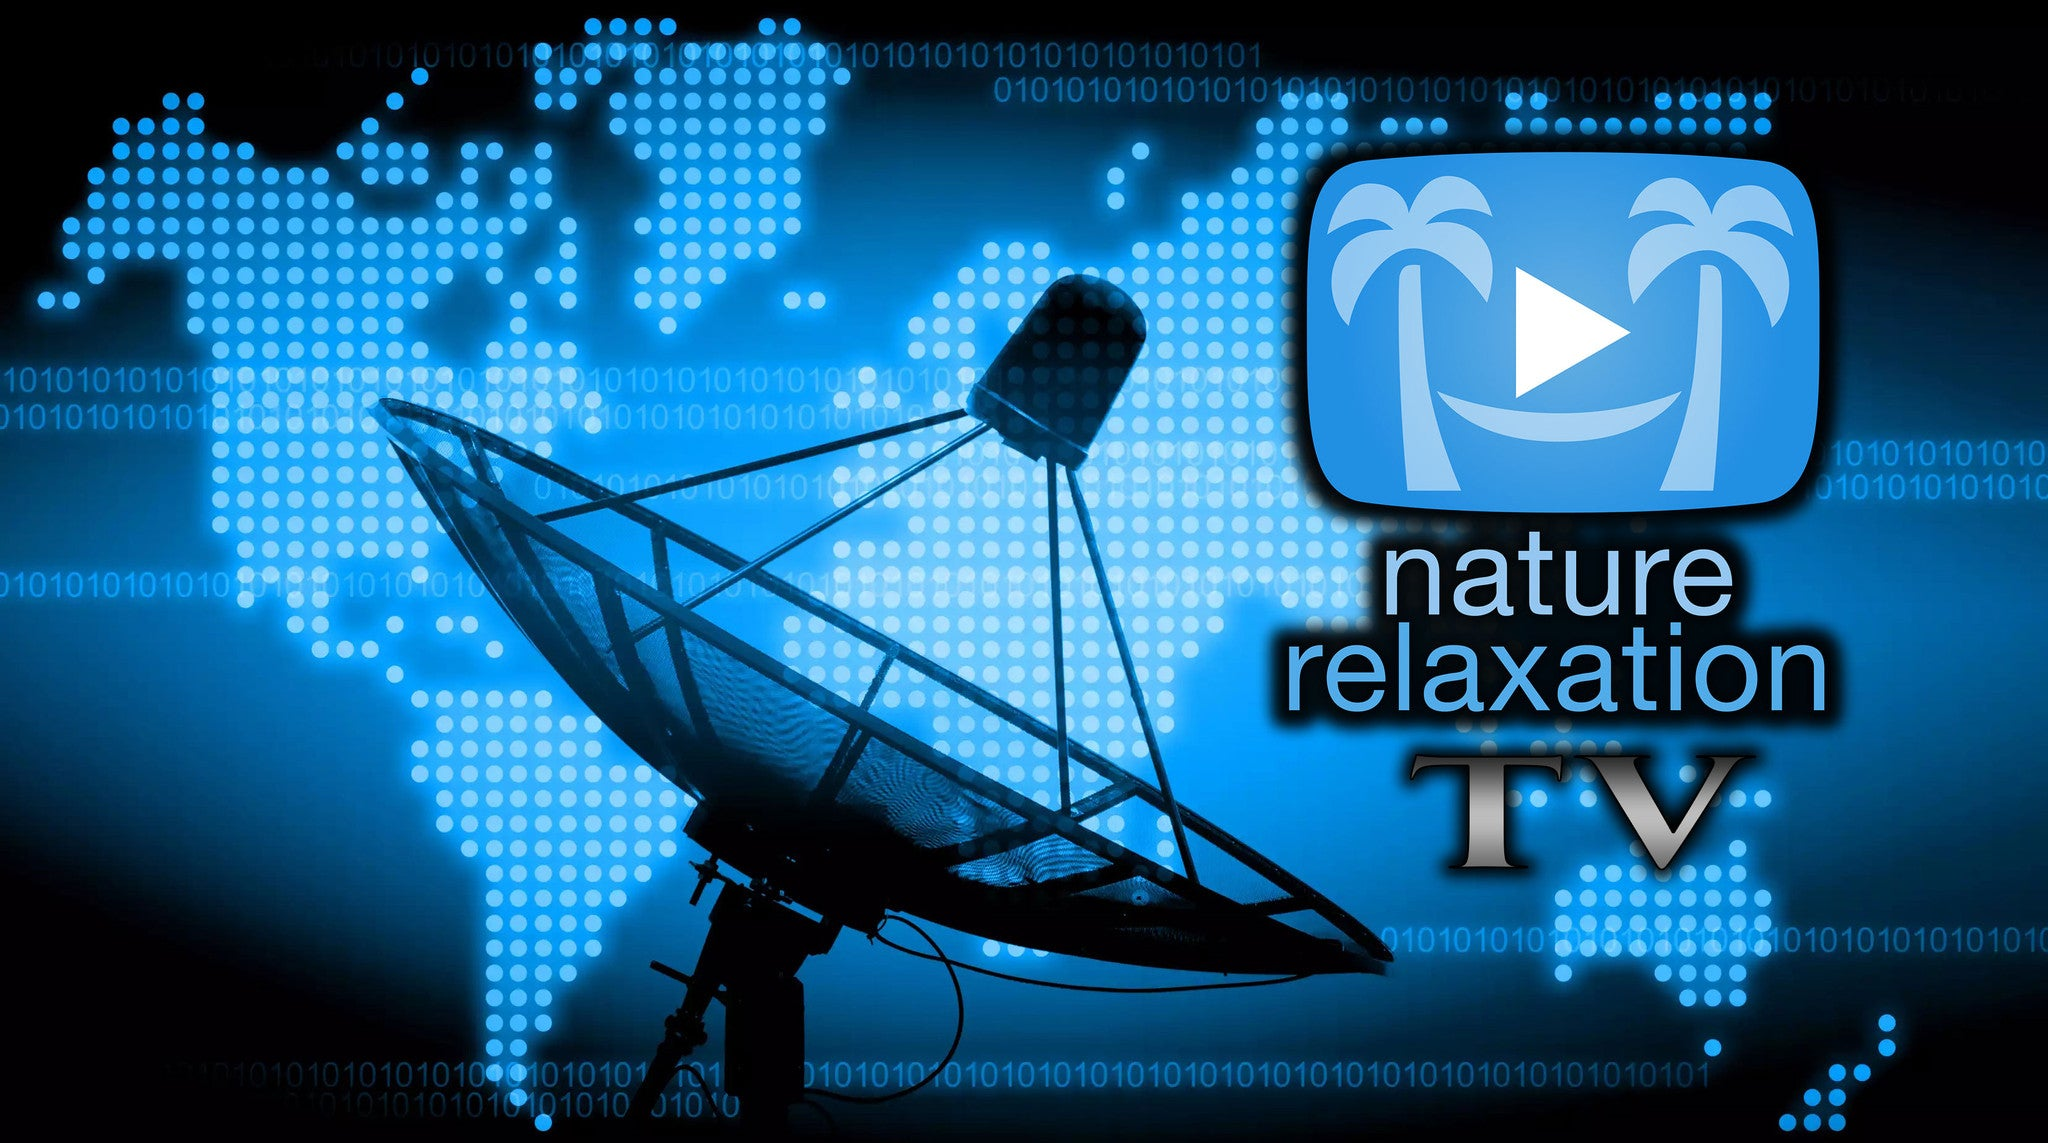 SES and Nature Relaxation Announce New 4K UHD TV Channel coming to North America Satellite Providers